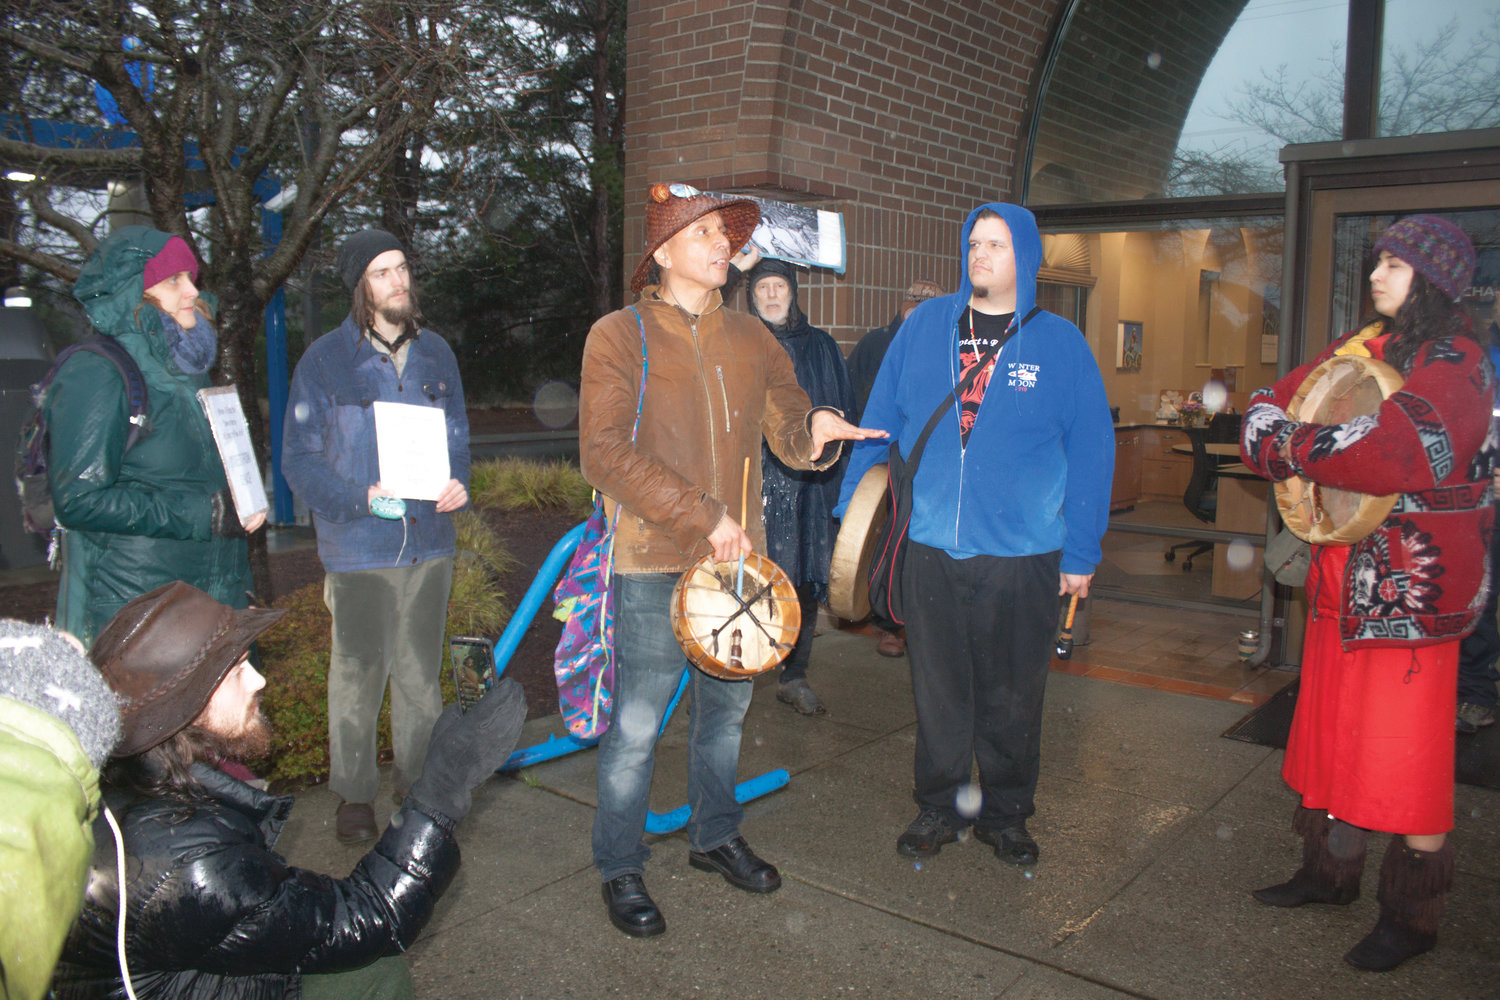 Paul Chiyokten Wagner of the Redmond-based Saanich First Nations and founder of the Protectors of the Salish Sea leads a group of natives and allies in speeches and protest songs outside the Chase Bank branch on Kearney Street Feb. 5.